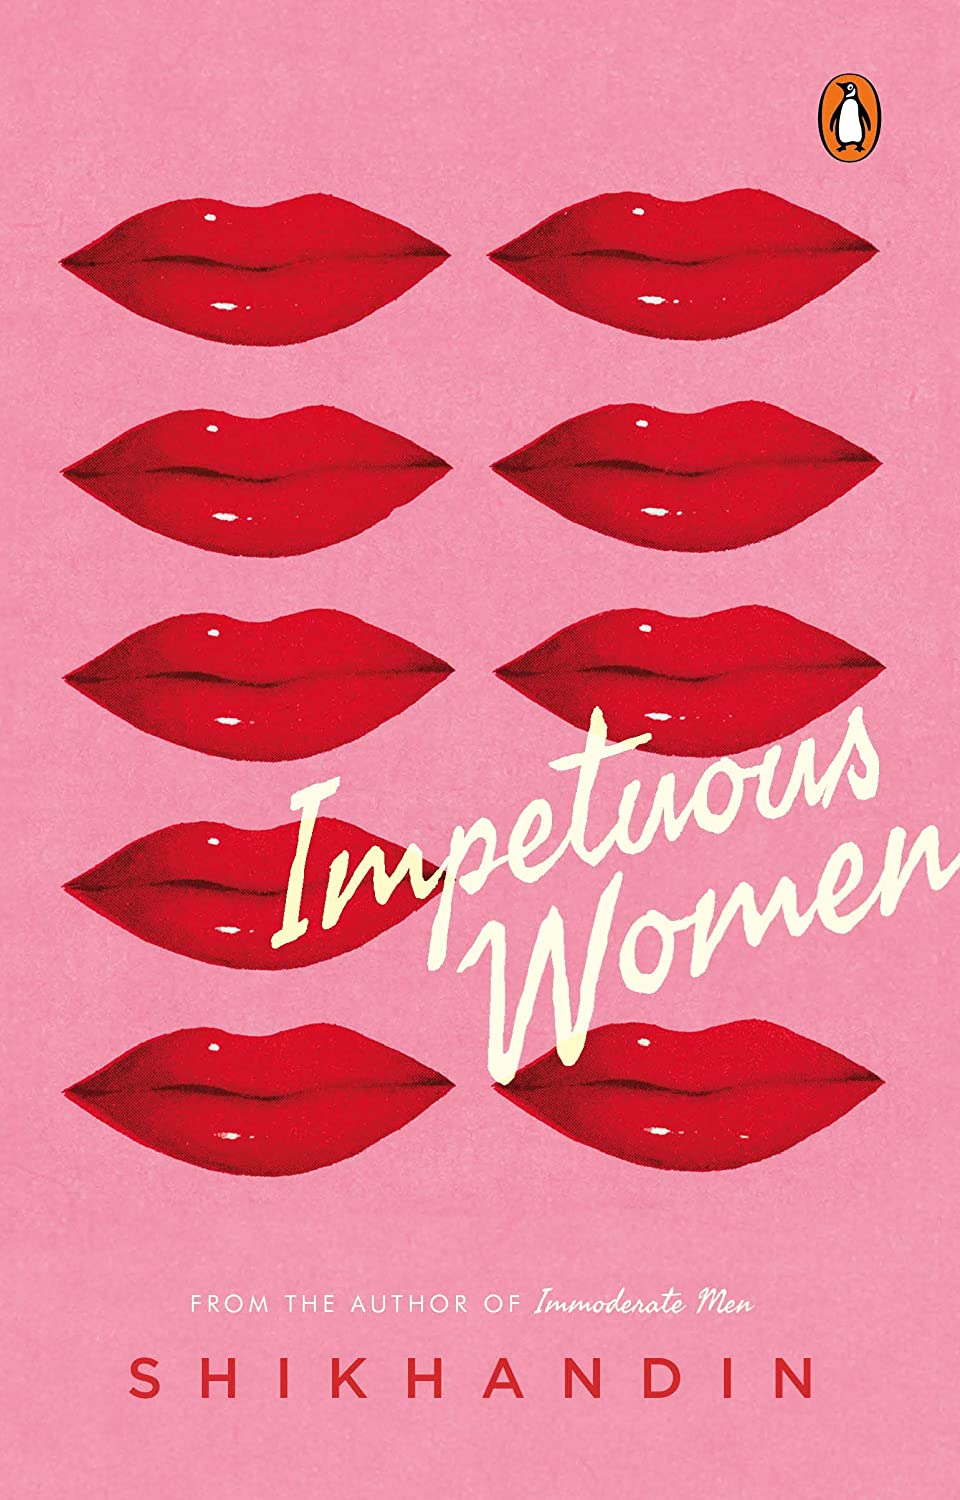 Impetuous Women